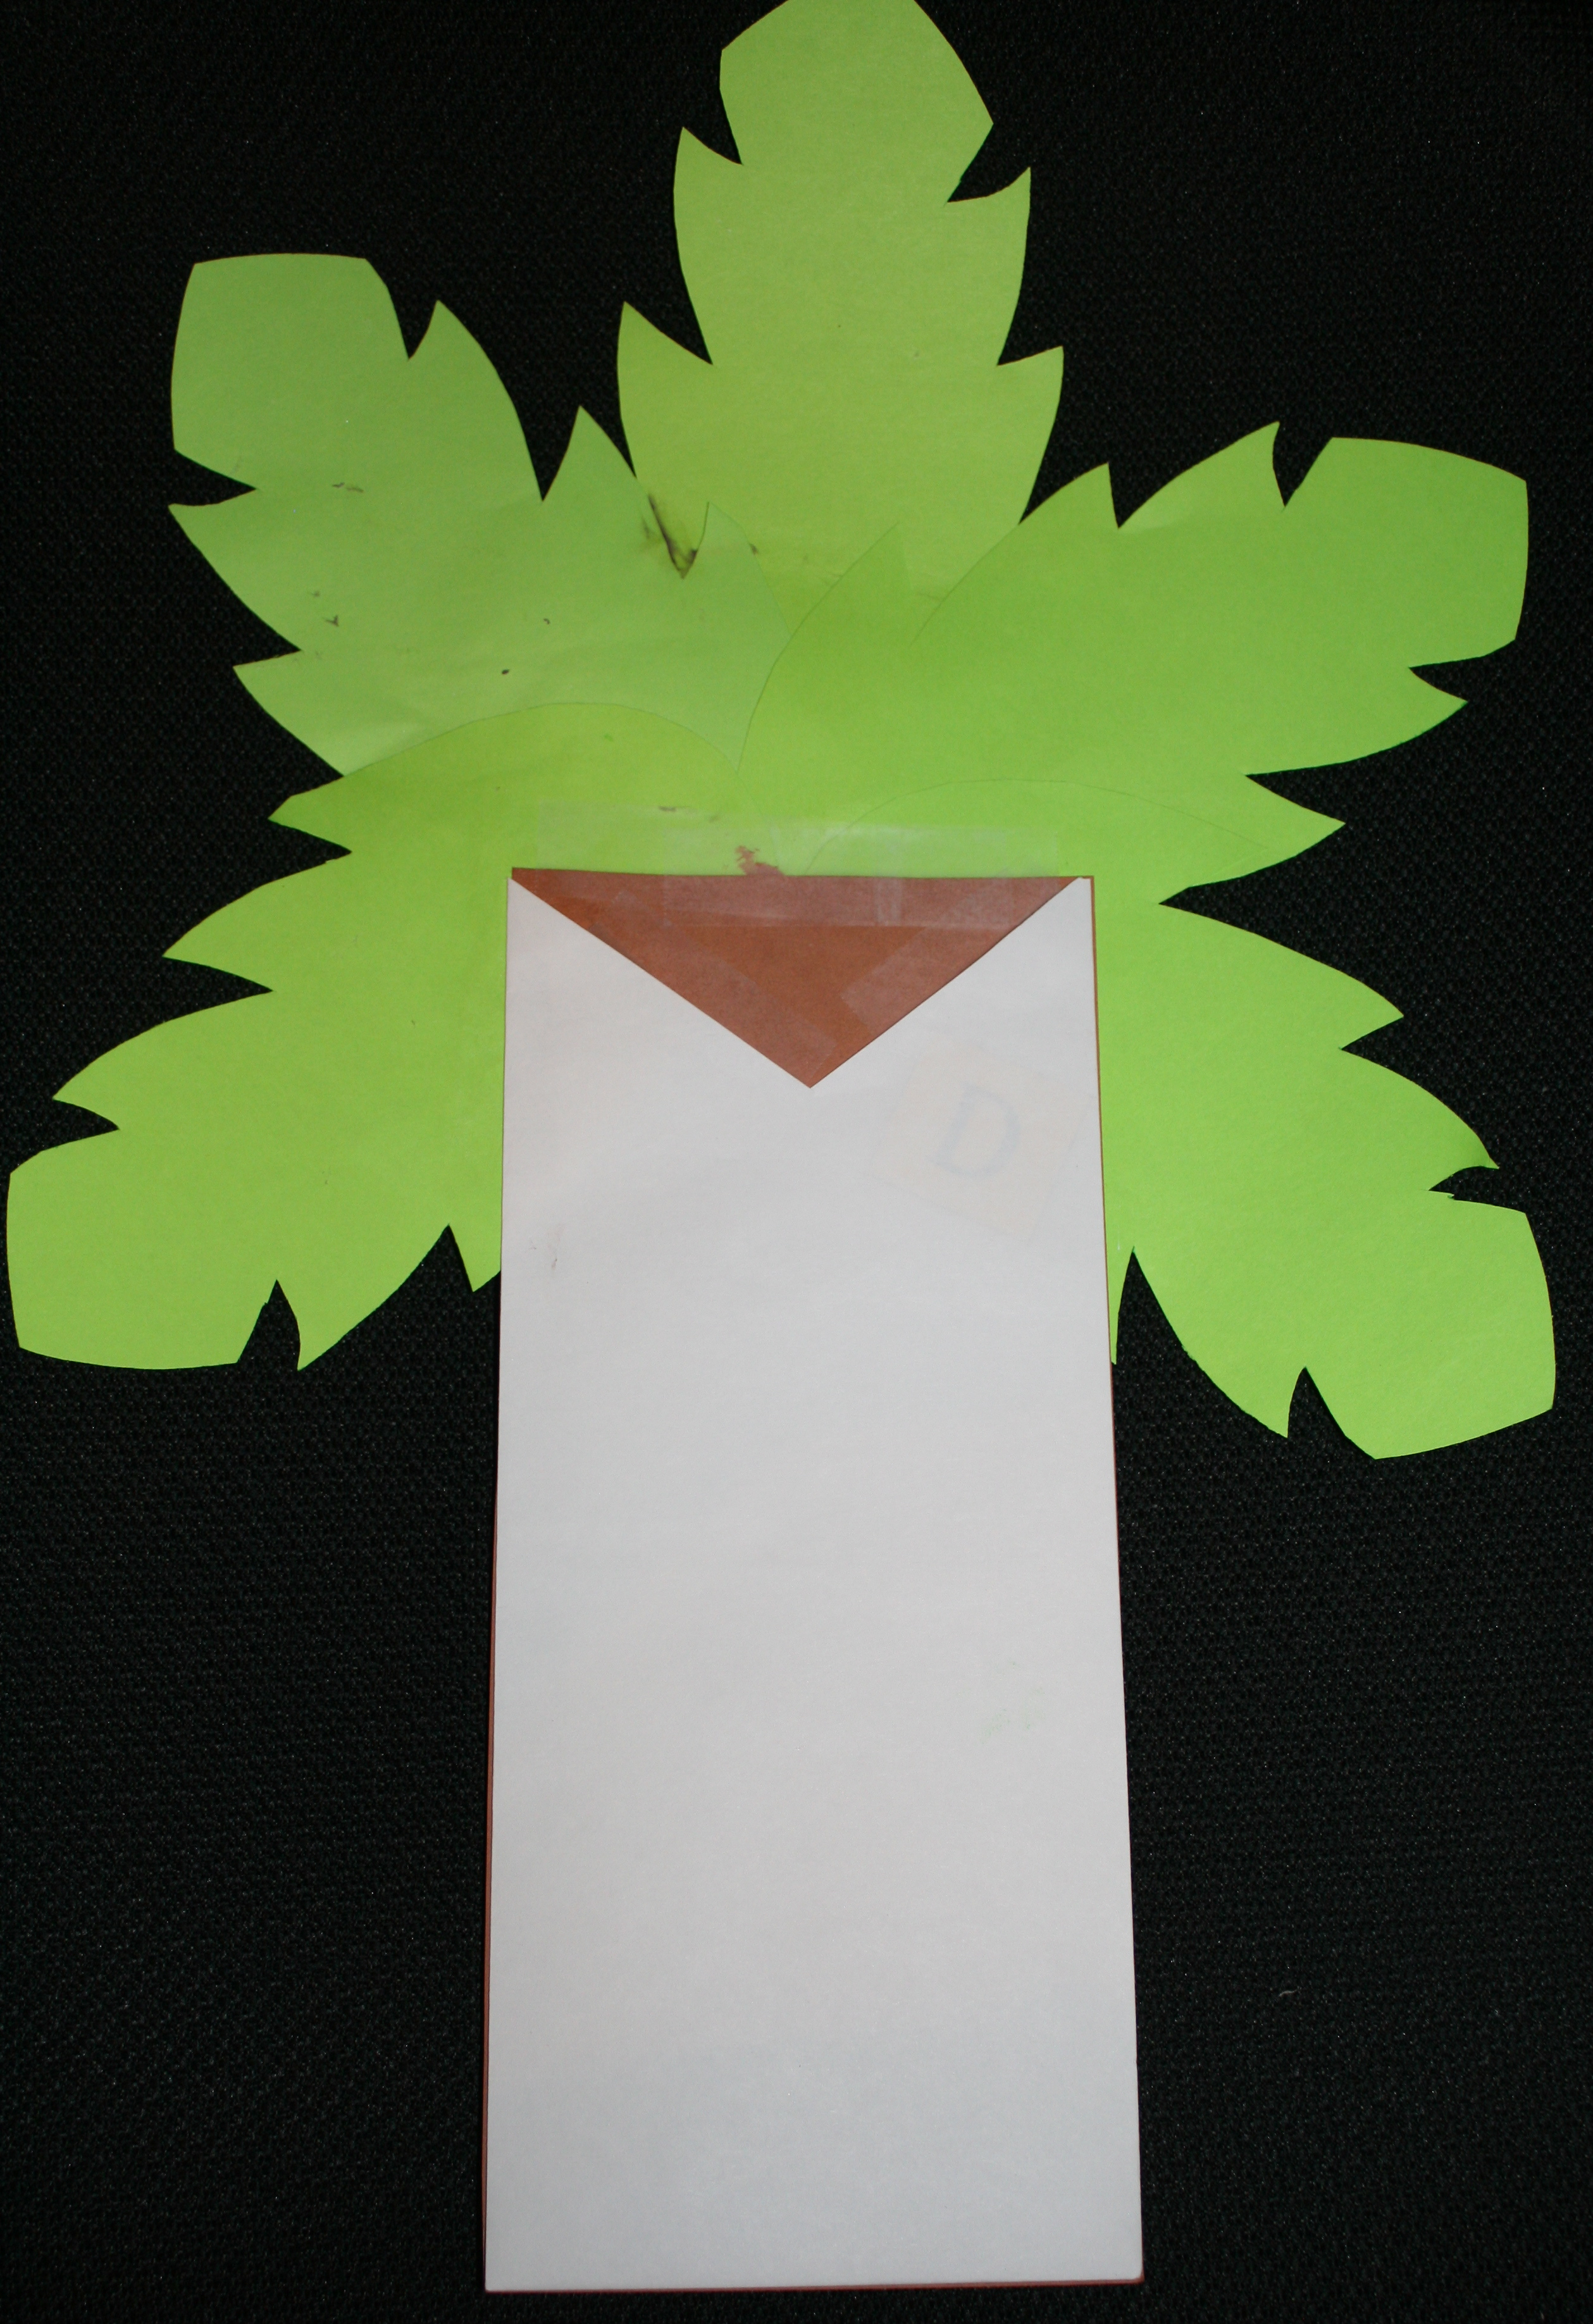 chicka boom game, chicka boom ideas, chicka boom art project, back to school ideas, ideas for the first day of school, back to school bulletin boards,